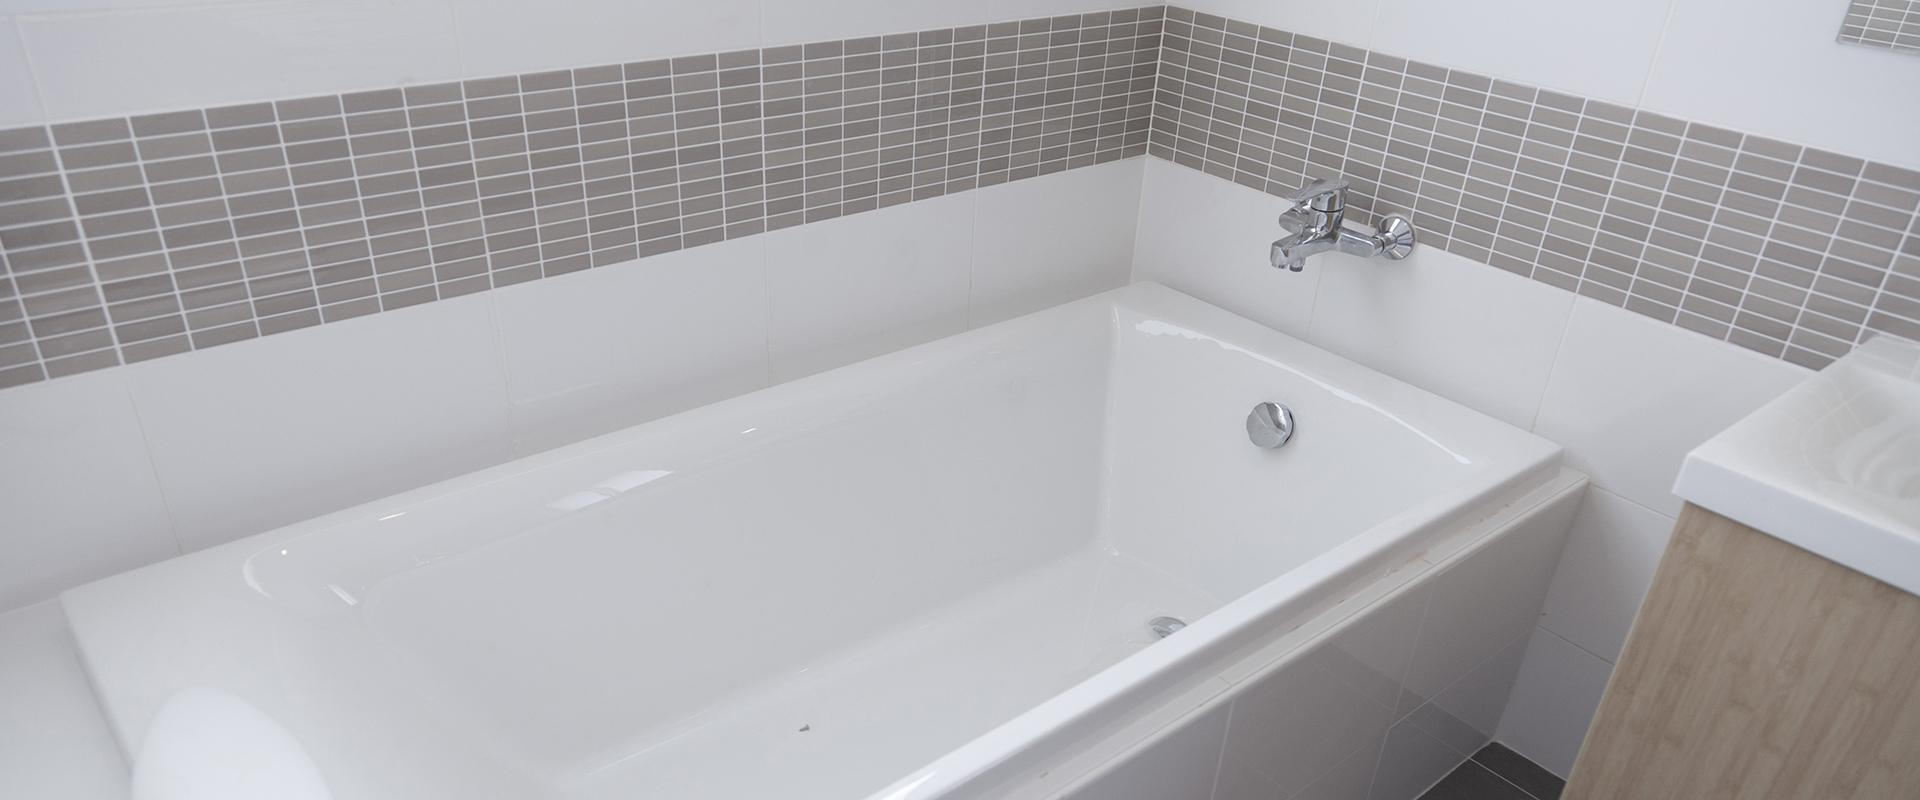 a white bath tub